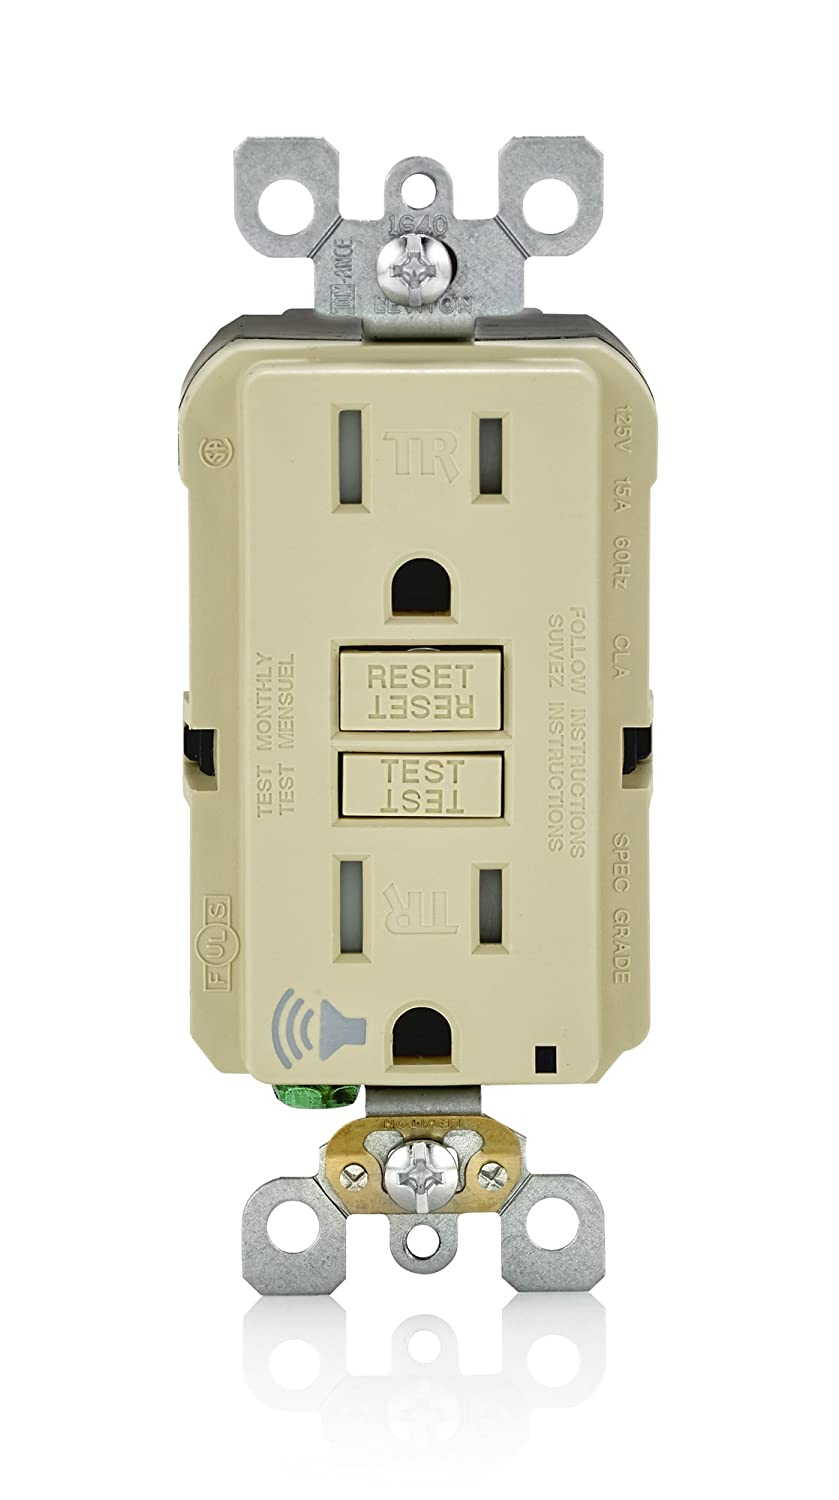 Leviton A7899 I Smartlockpro Slim Gfci With Audible Trip Alert 20 Removing The Old Gfi Outlet Amp 120 Volt Ivory